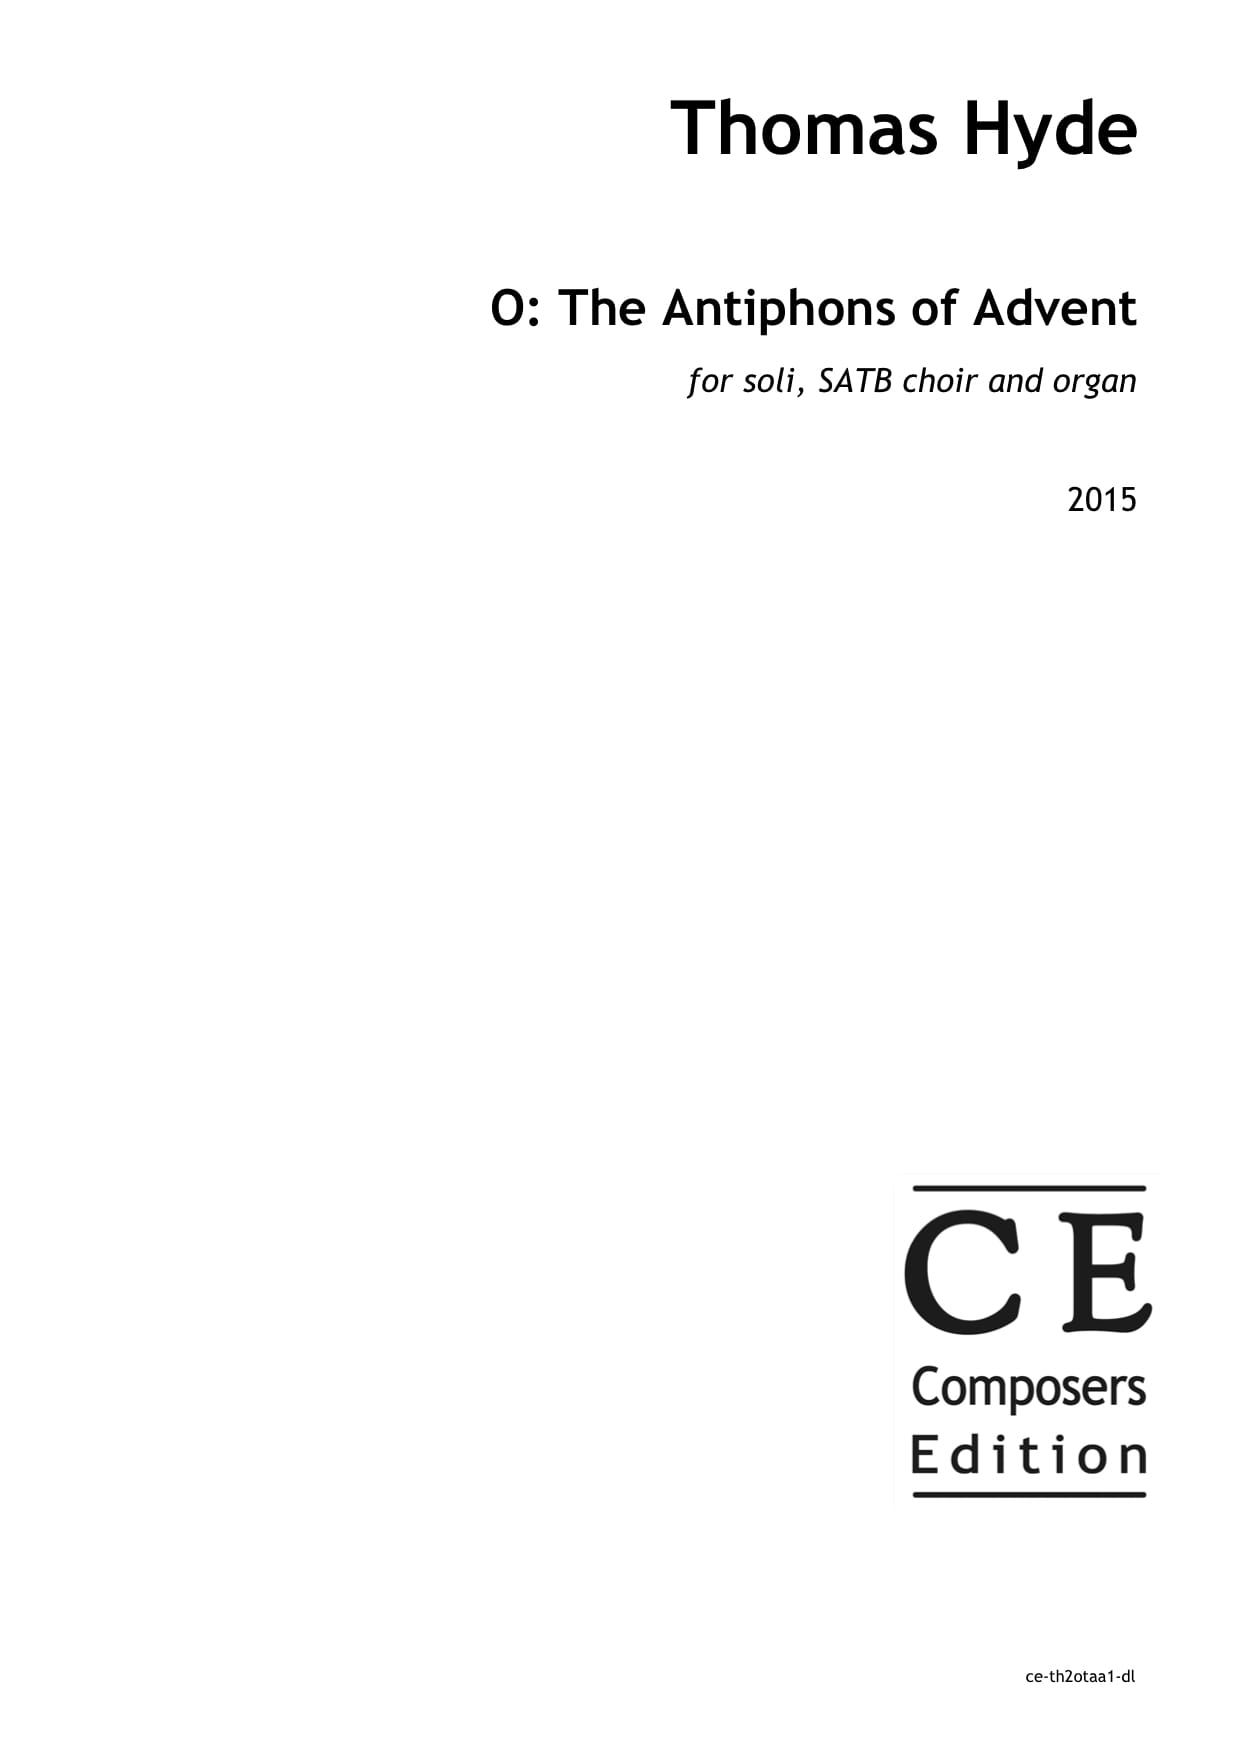 Thomas Hyde: O: The Antiphons of Advent for soli, SATB choir and organ